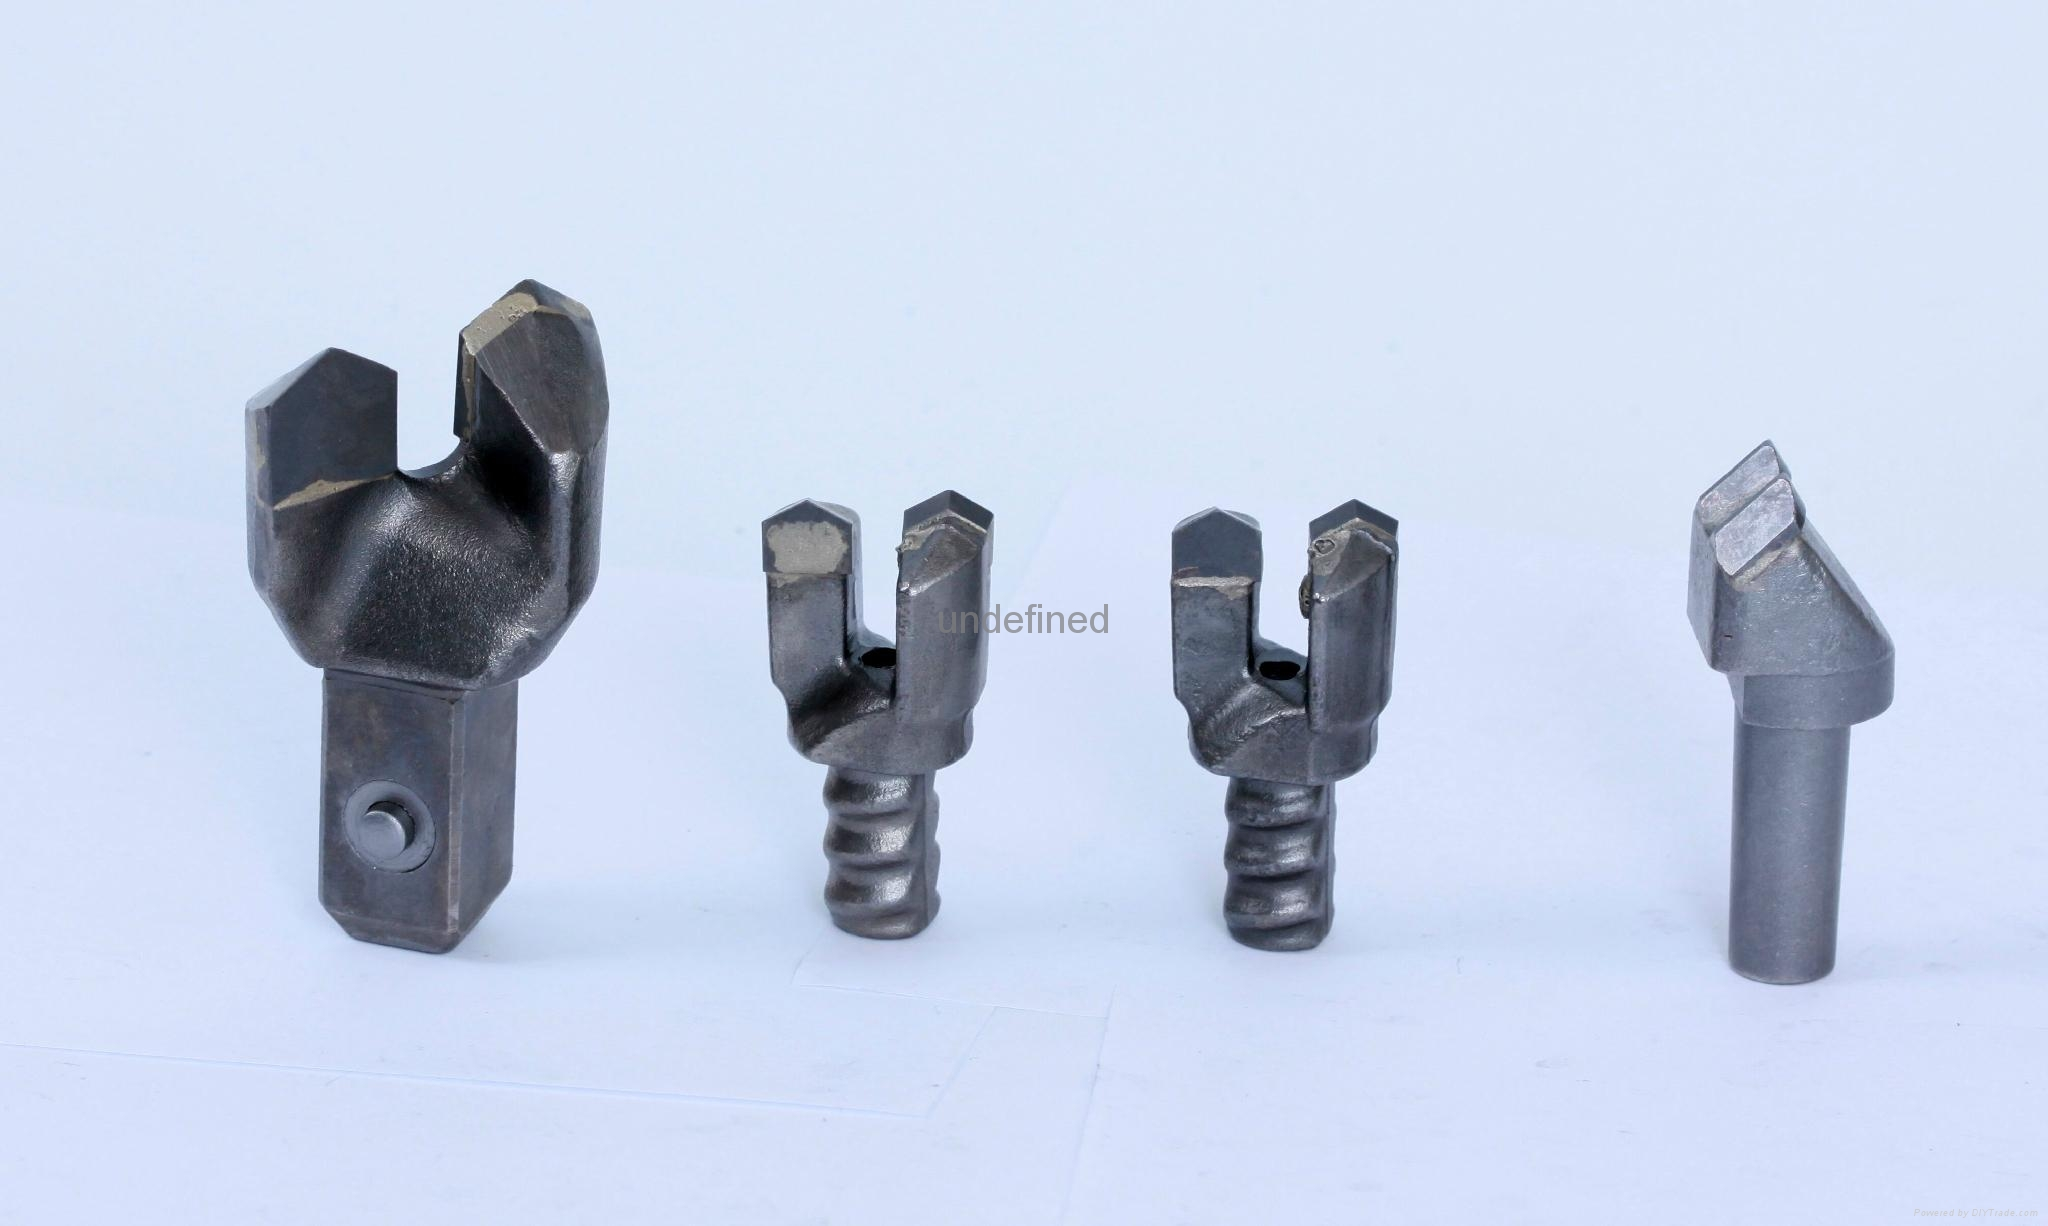 kennametal tools. kennametal cross bits,mining bits,coal mining tools 2